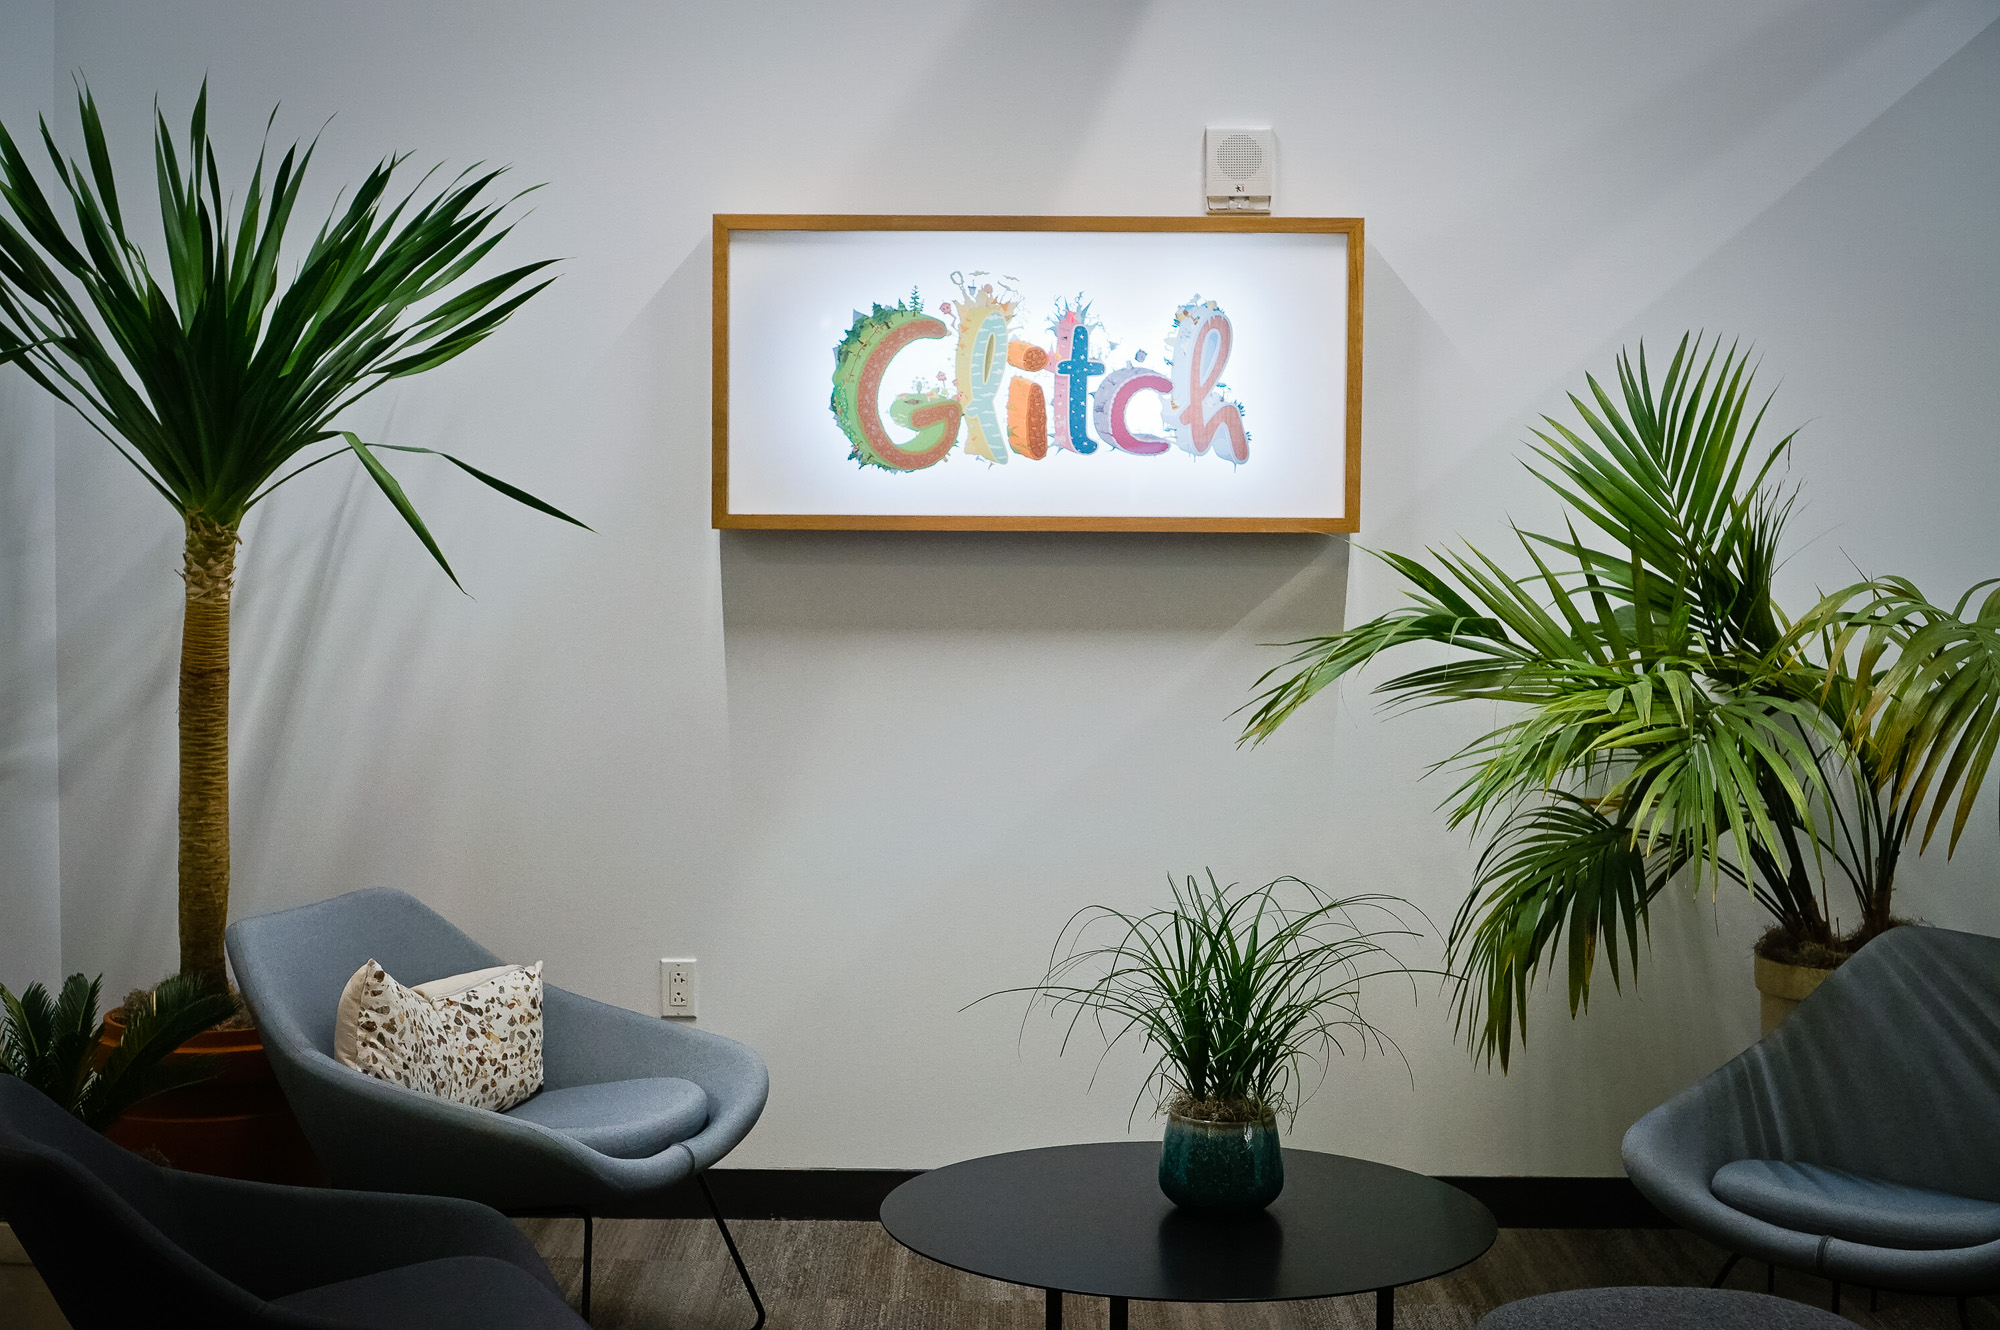 Backprinted full color lightbox sign with wood frame for Glitch, a browser-based, massively multiplayer online game—eventually becoming Slack.